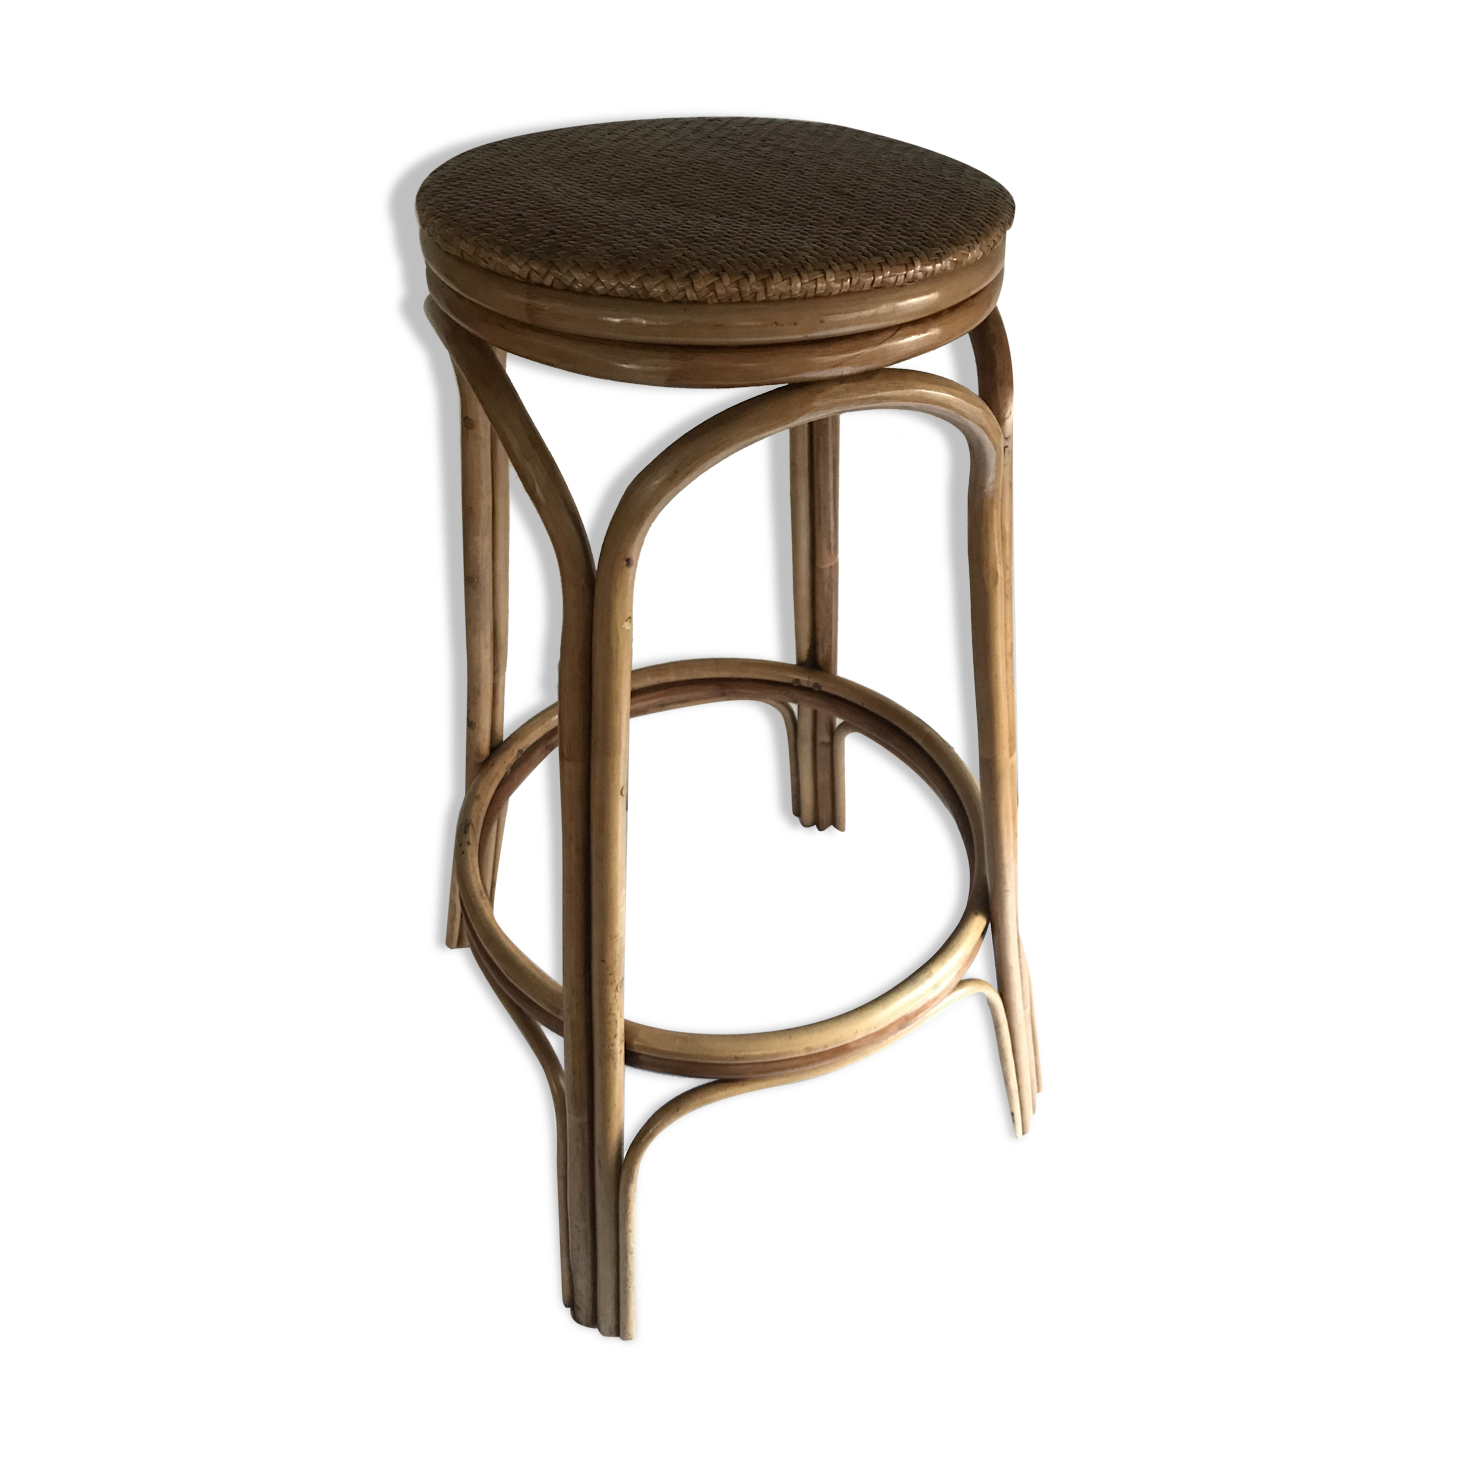 tabouret de bar haut free tabouret bar dossier haut lot a sign tabouret de bar with tabouret de. Black Bedroom Furniture Sets. Home Design Ideas